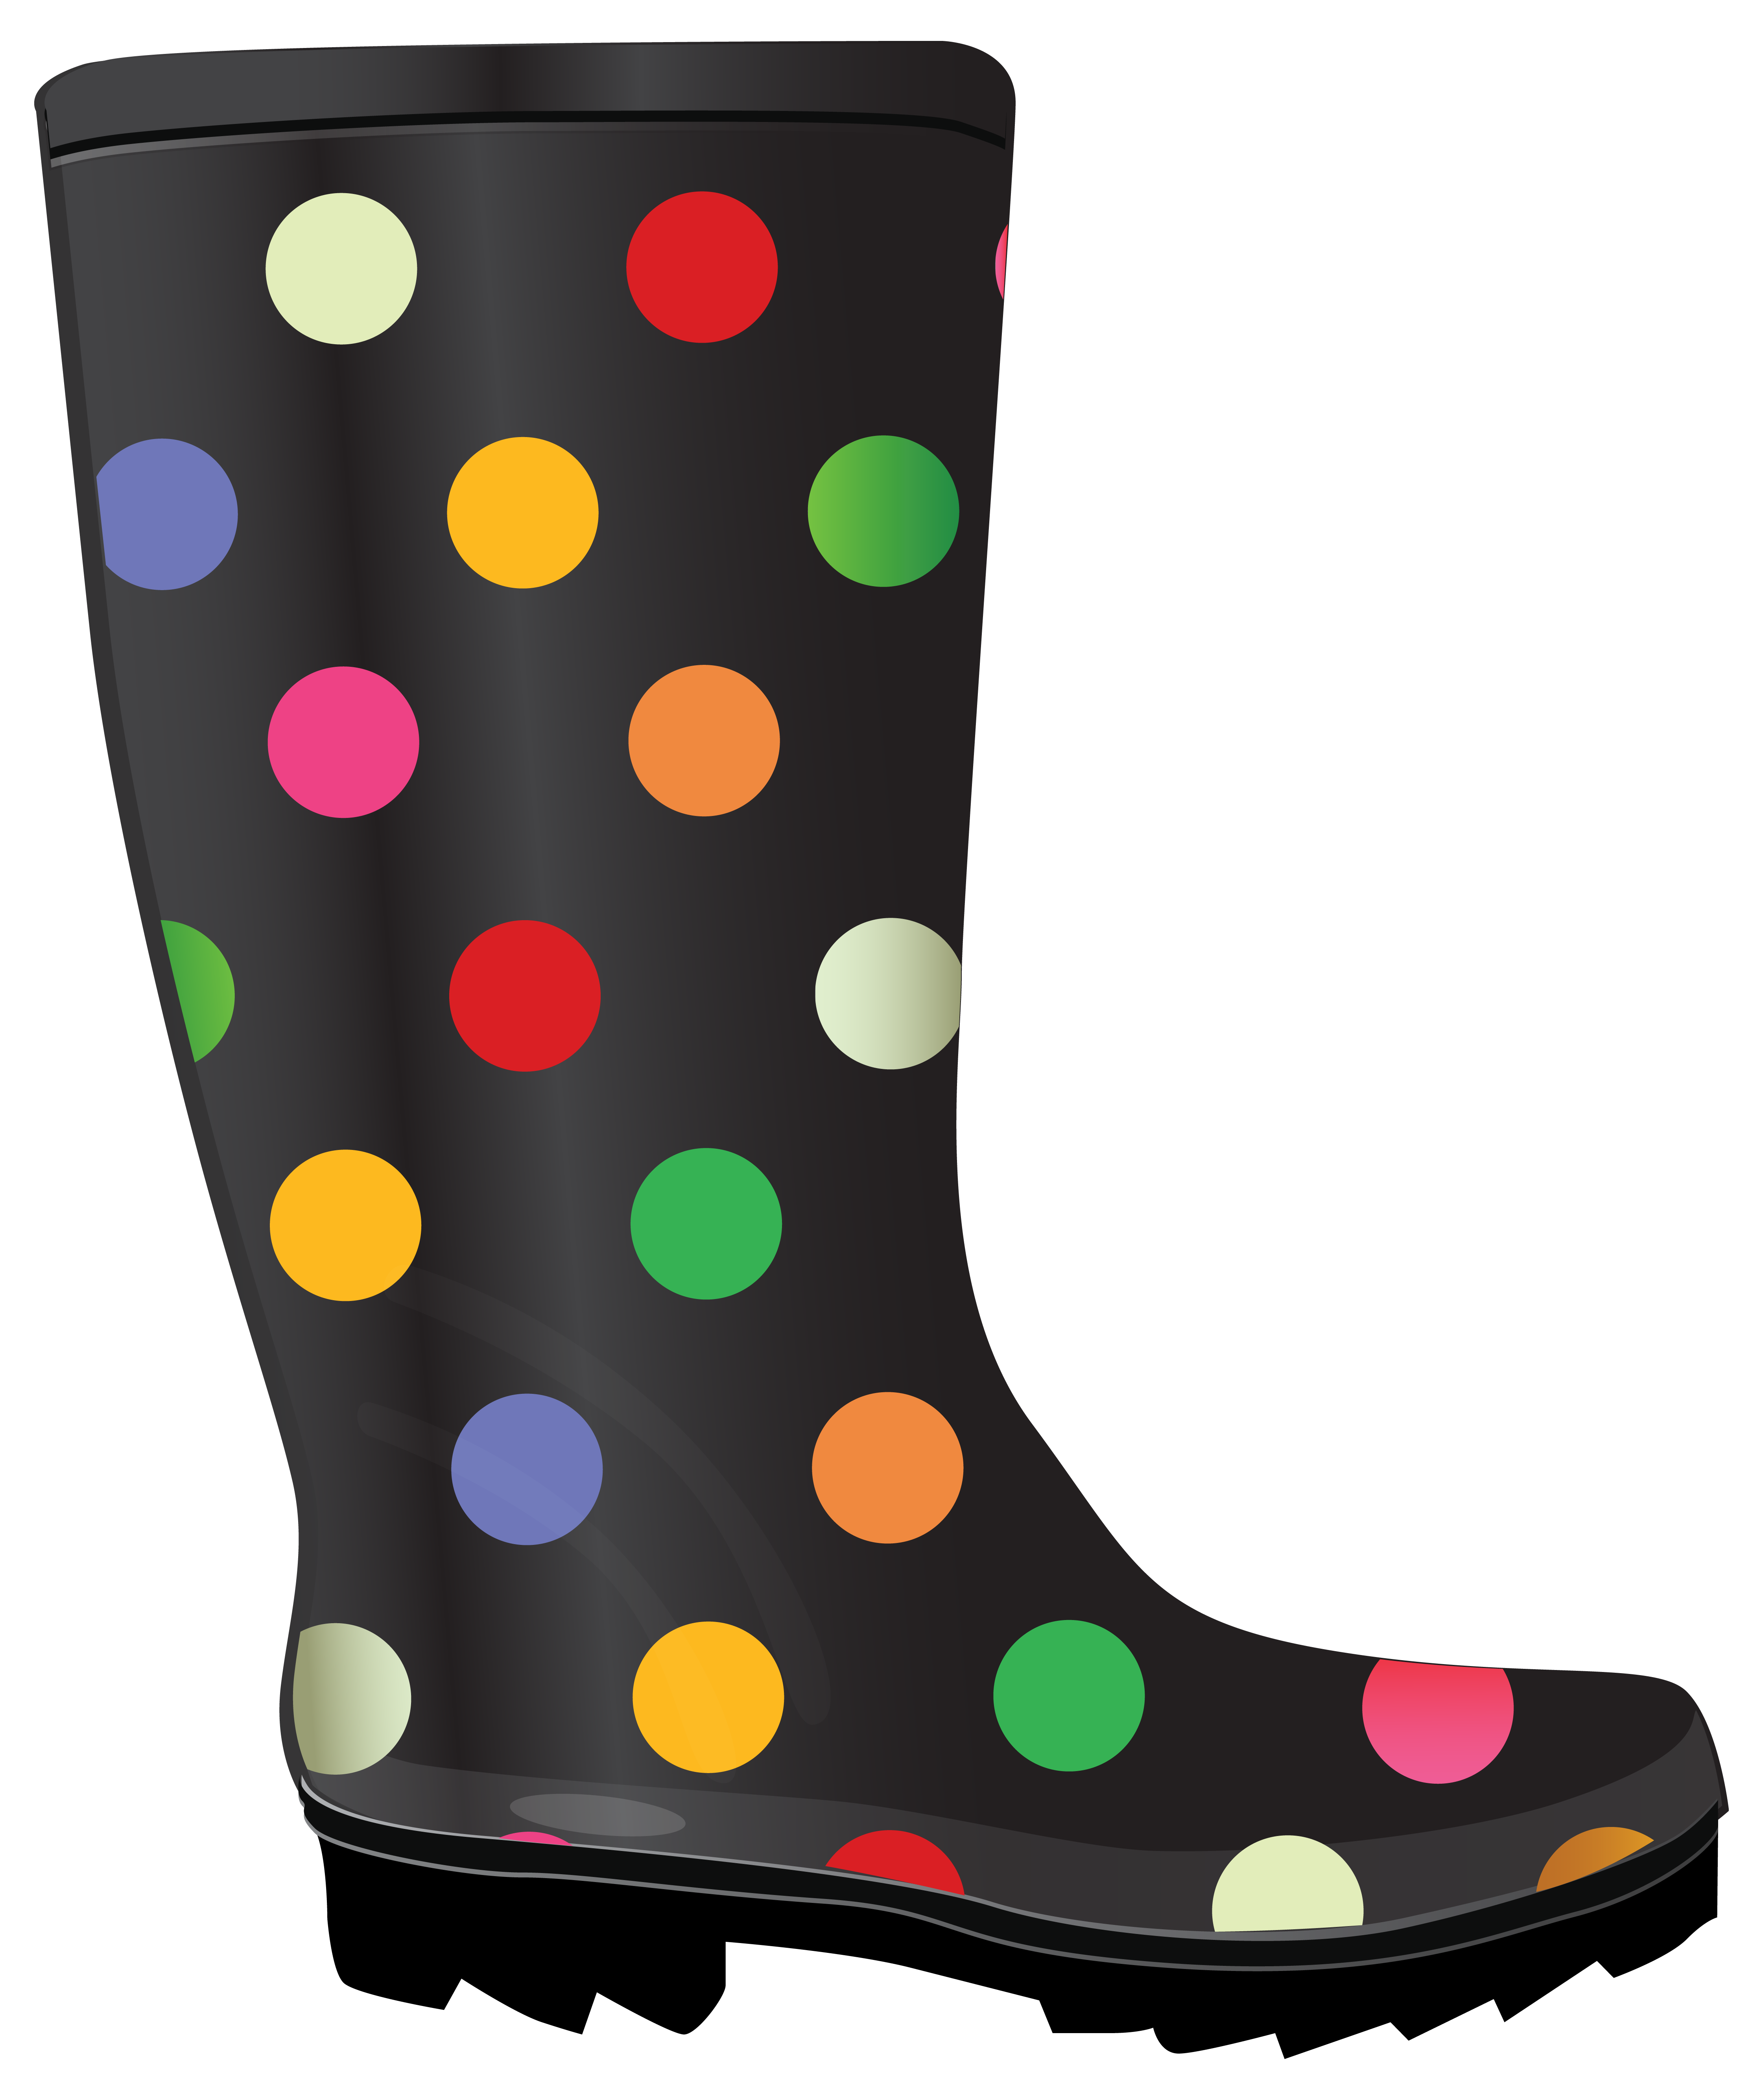 Boots clipart transparent background. Dotted rubber png image